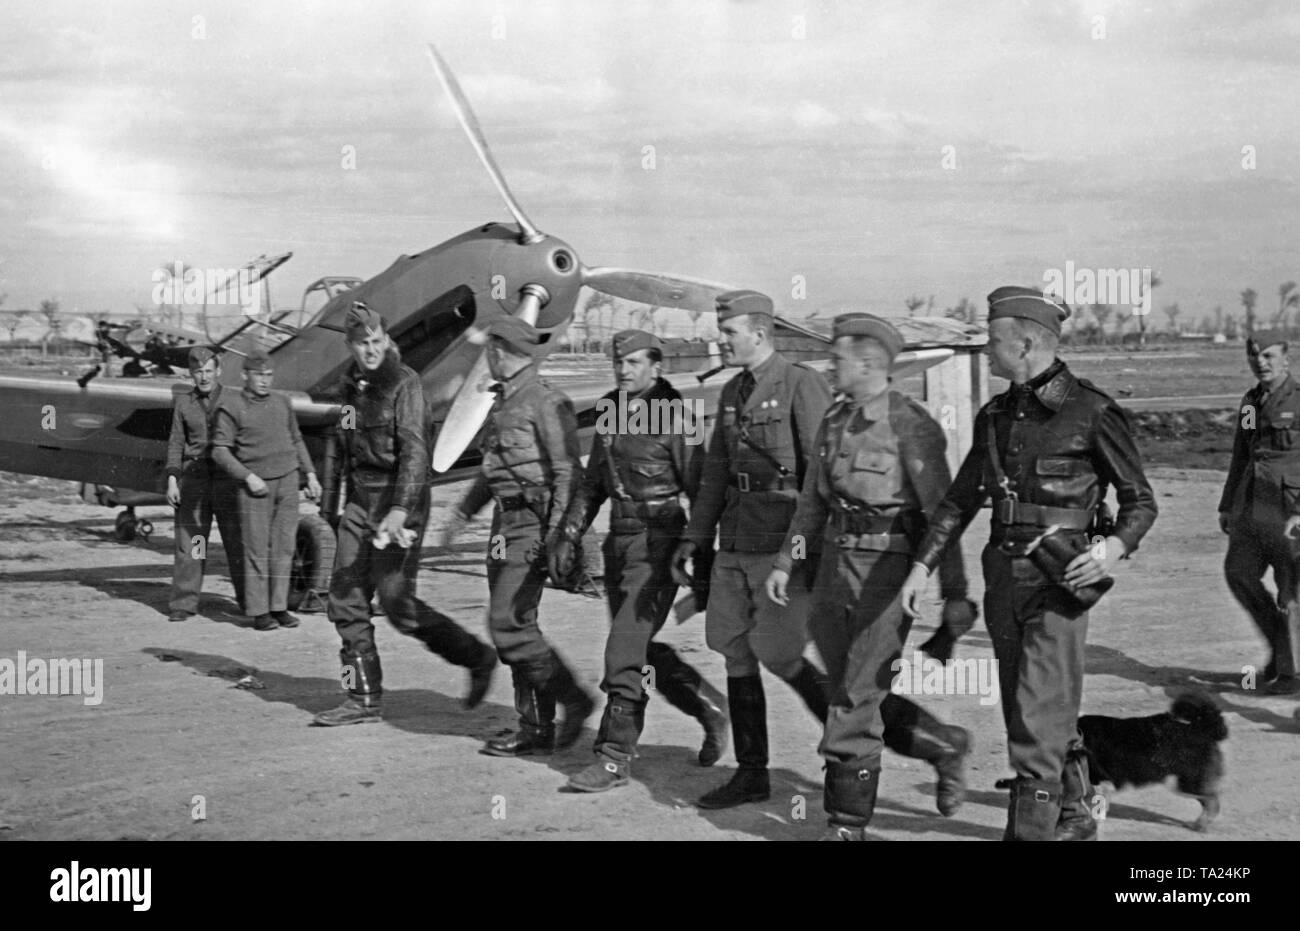 Photo of a group of combat pilots of the Condor Legion, fighting group 88, while marching to their ready-to-use Messerschmitt Bf 109 fighters (in the background) on an airfield in Spain in 1939. The mouth of the machine gun is visible in the hollow propellor nose cone. - Stock Image